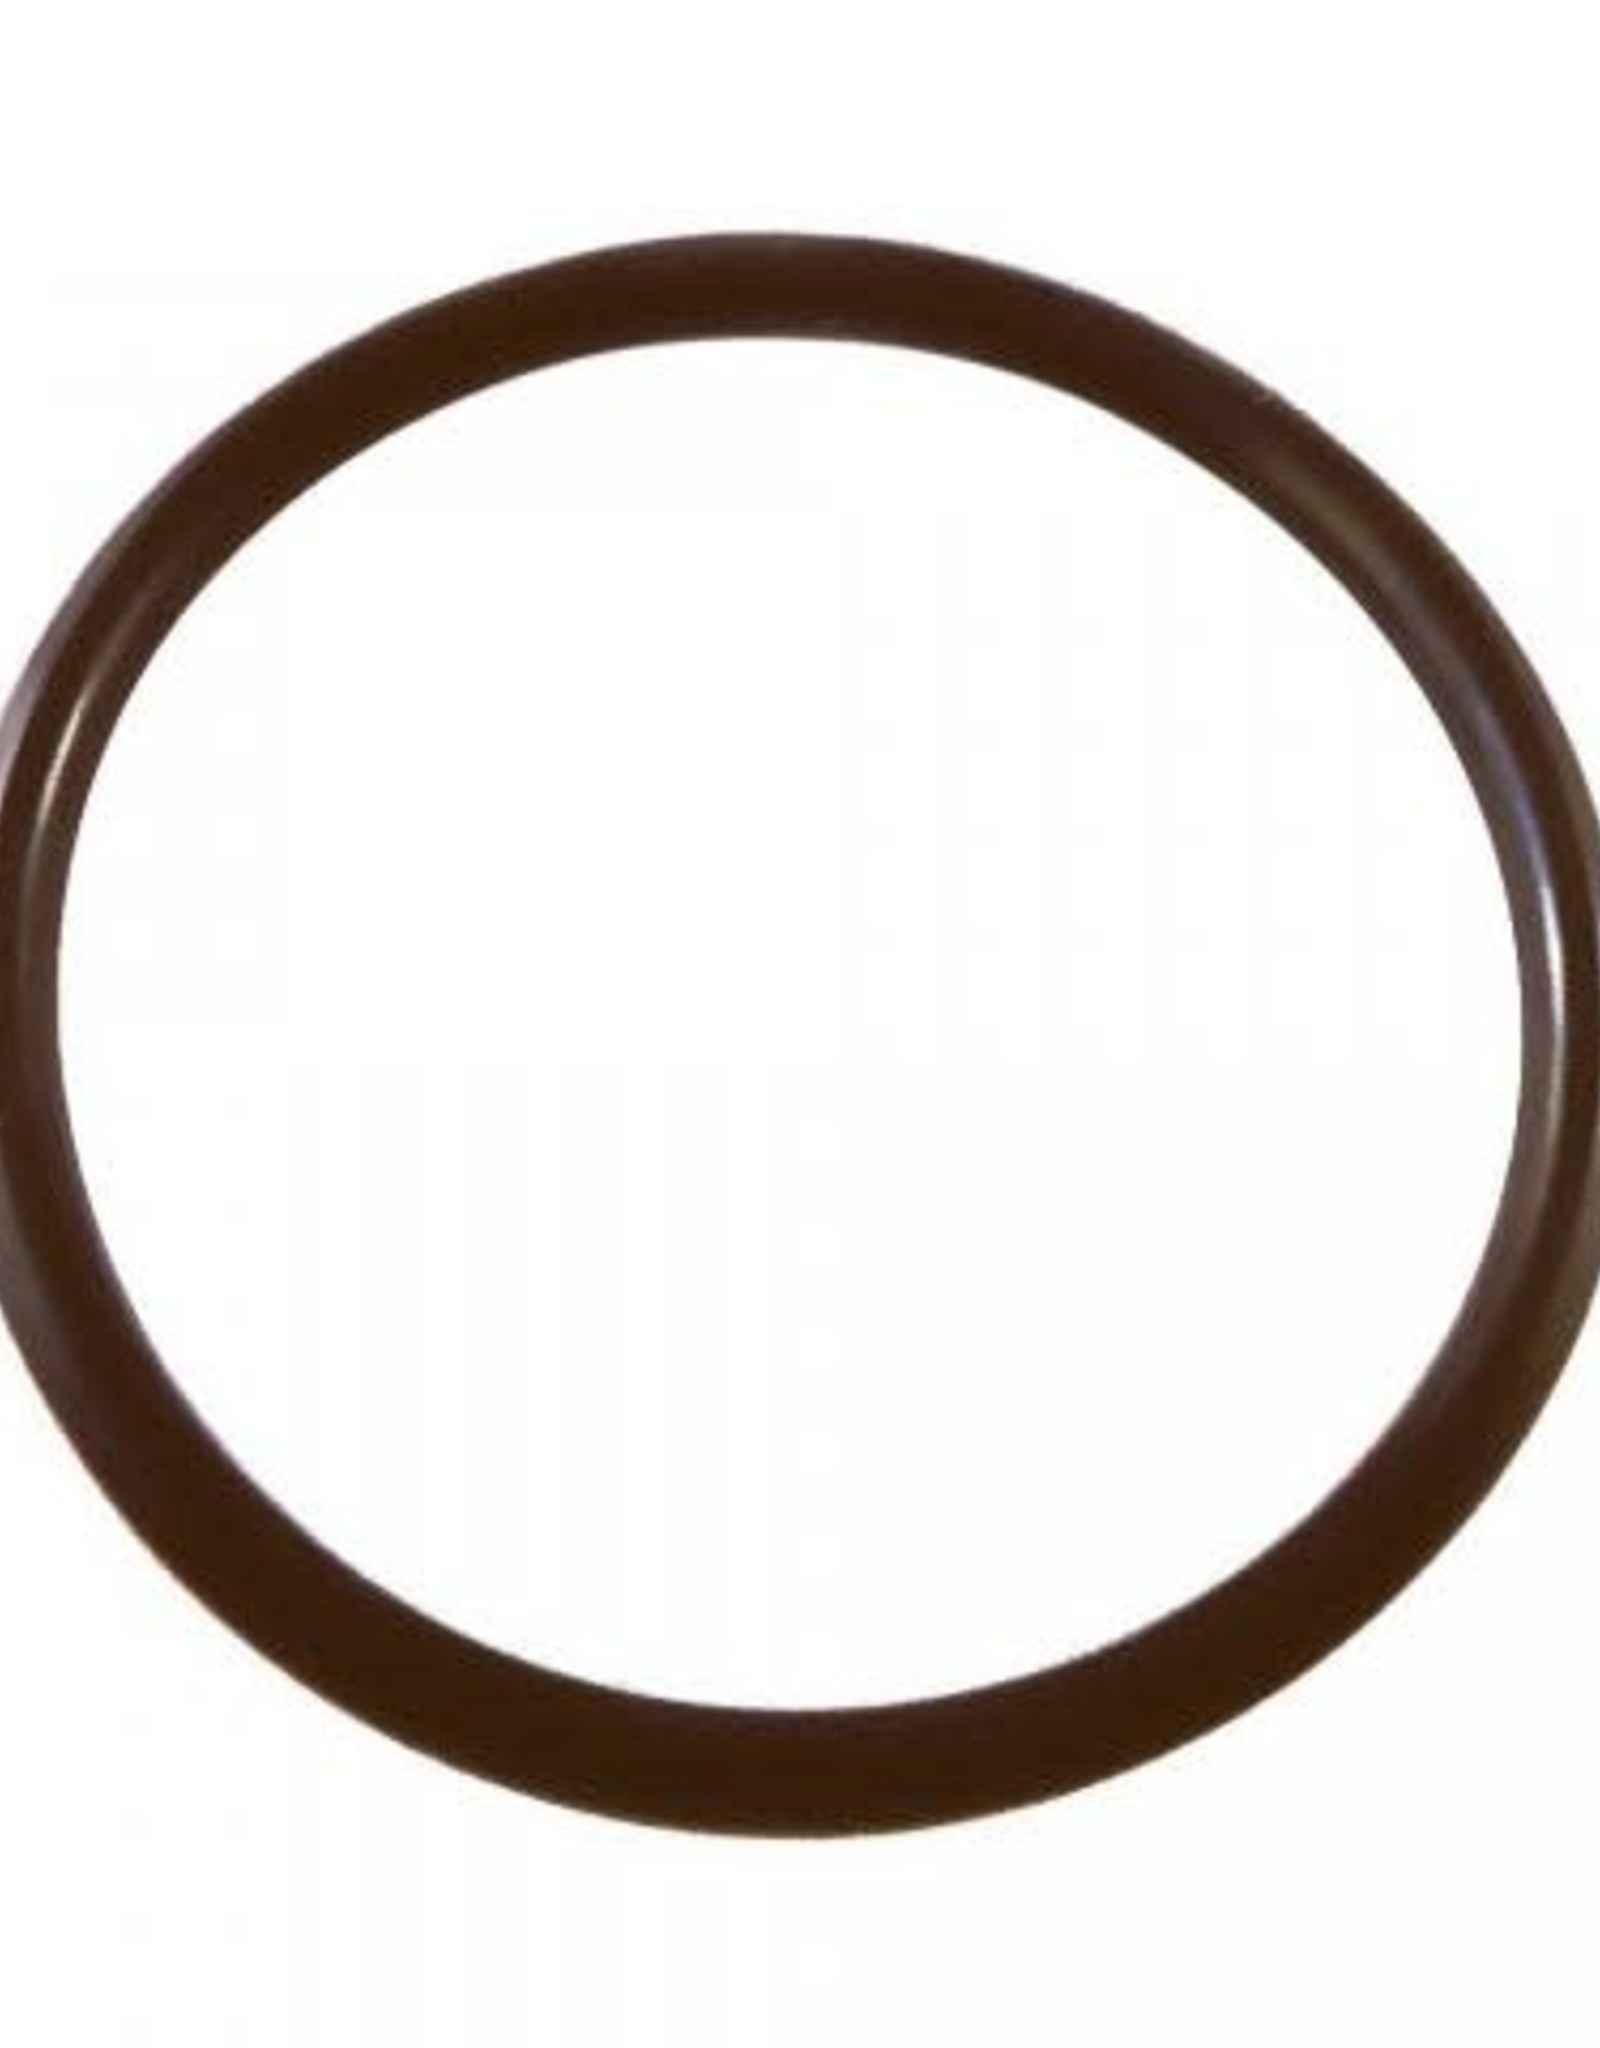 Product Tank Closure O-Ring (Brown-Soft)